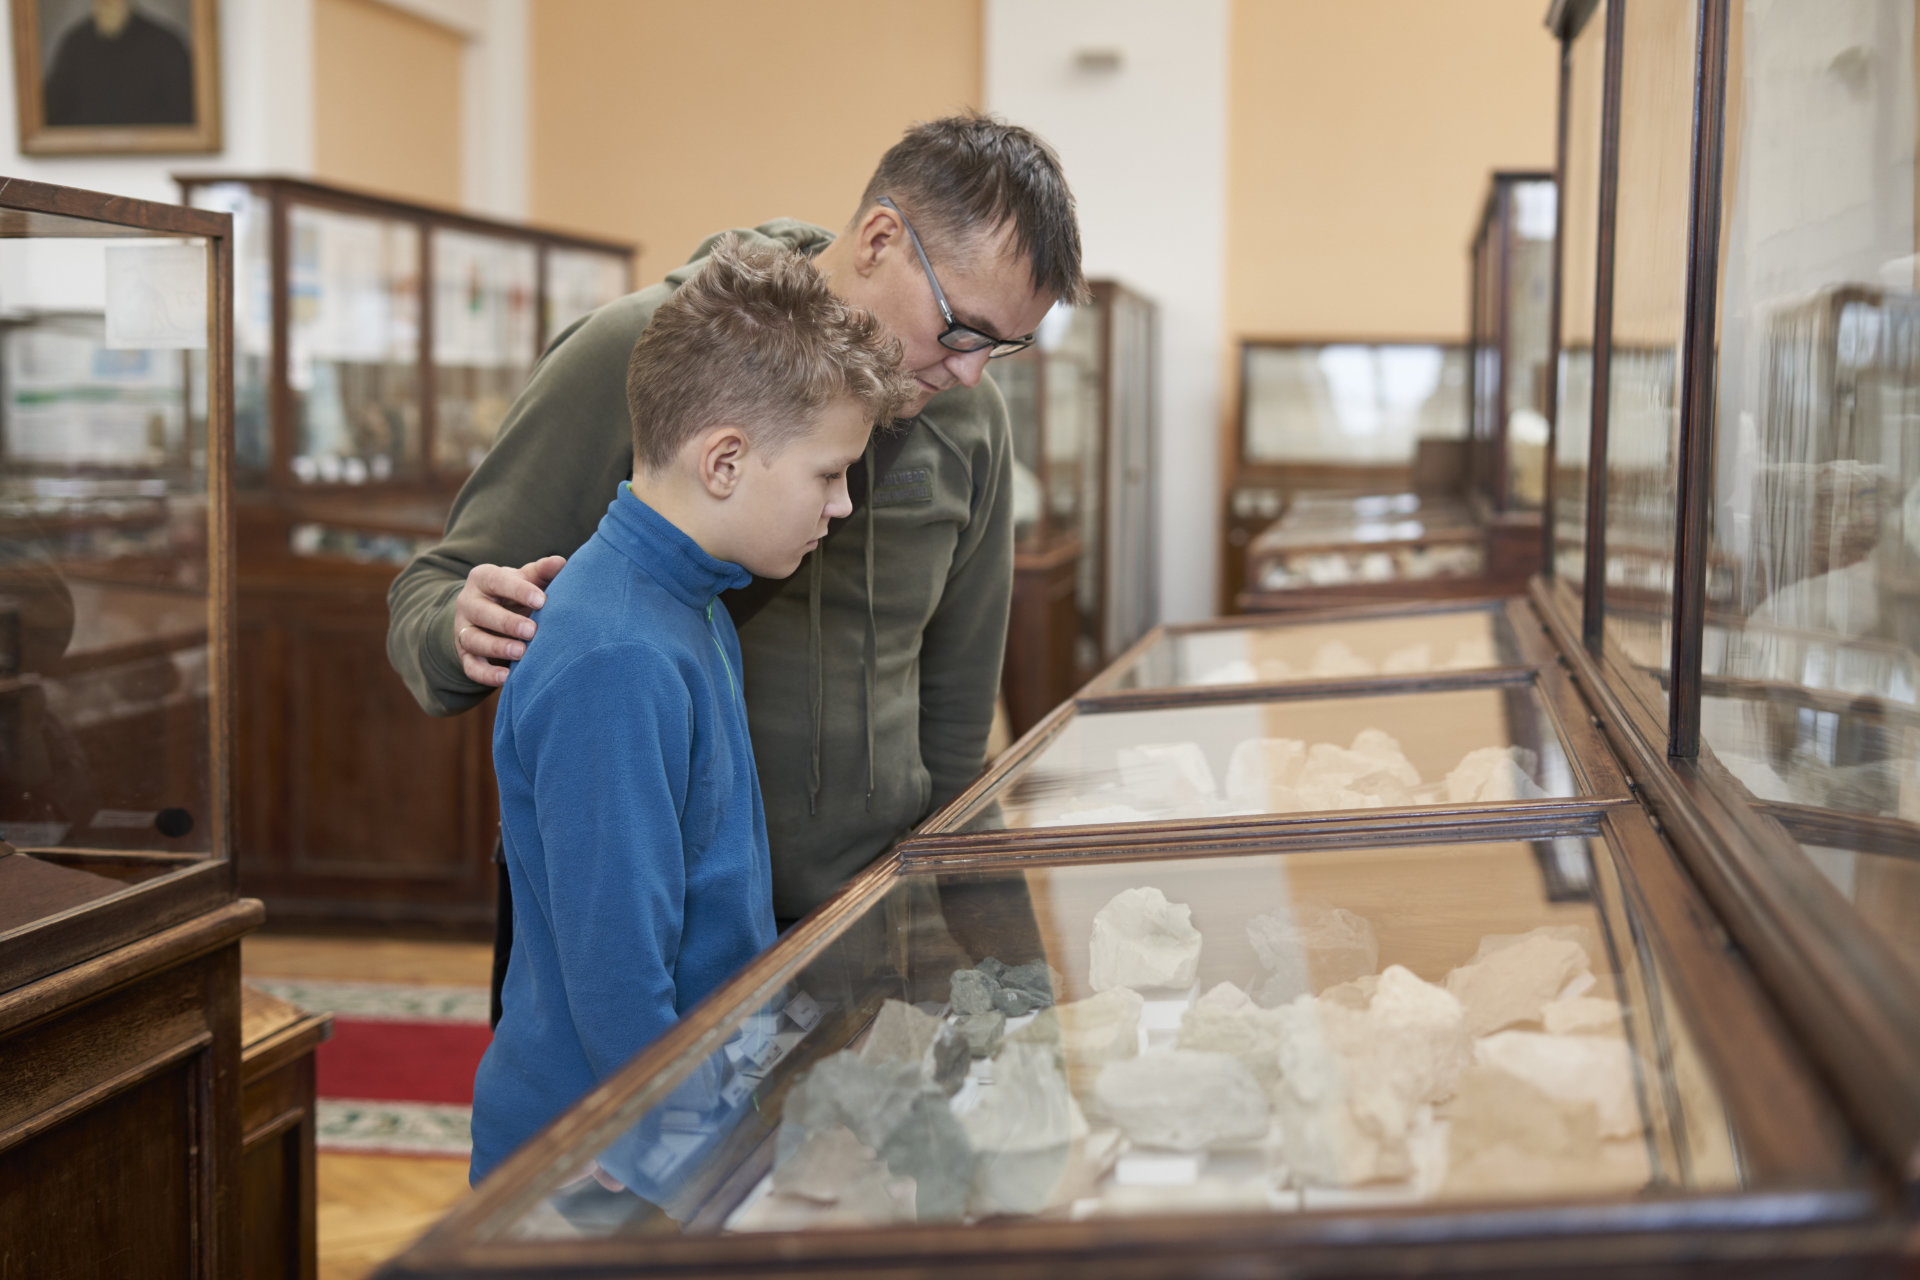 A teenager boy examines exhibits at the Museum of Natural Histor